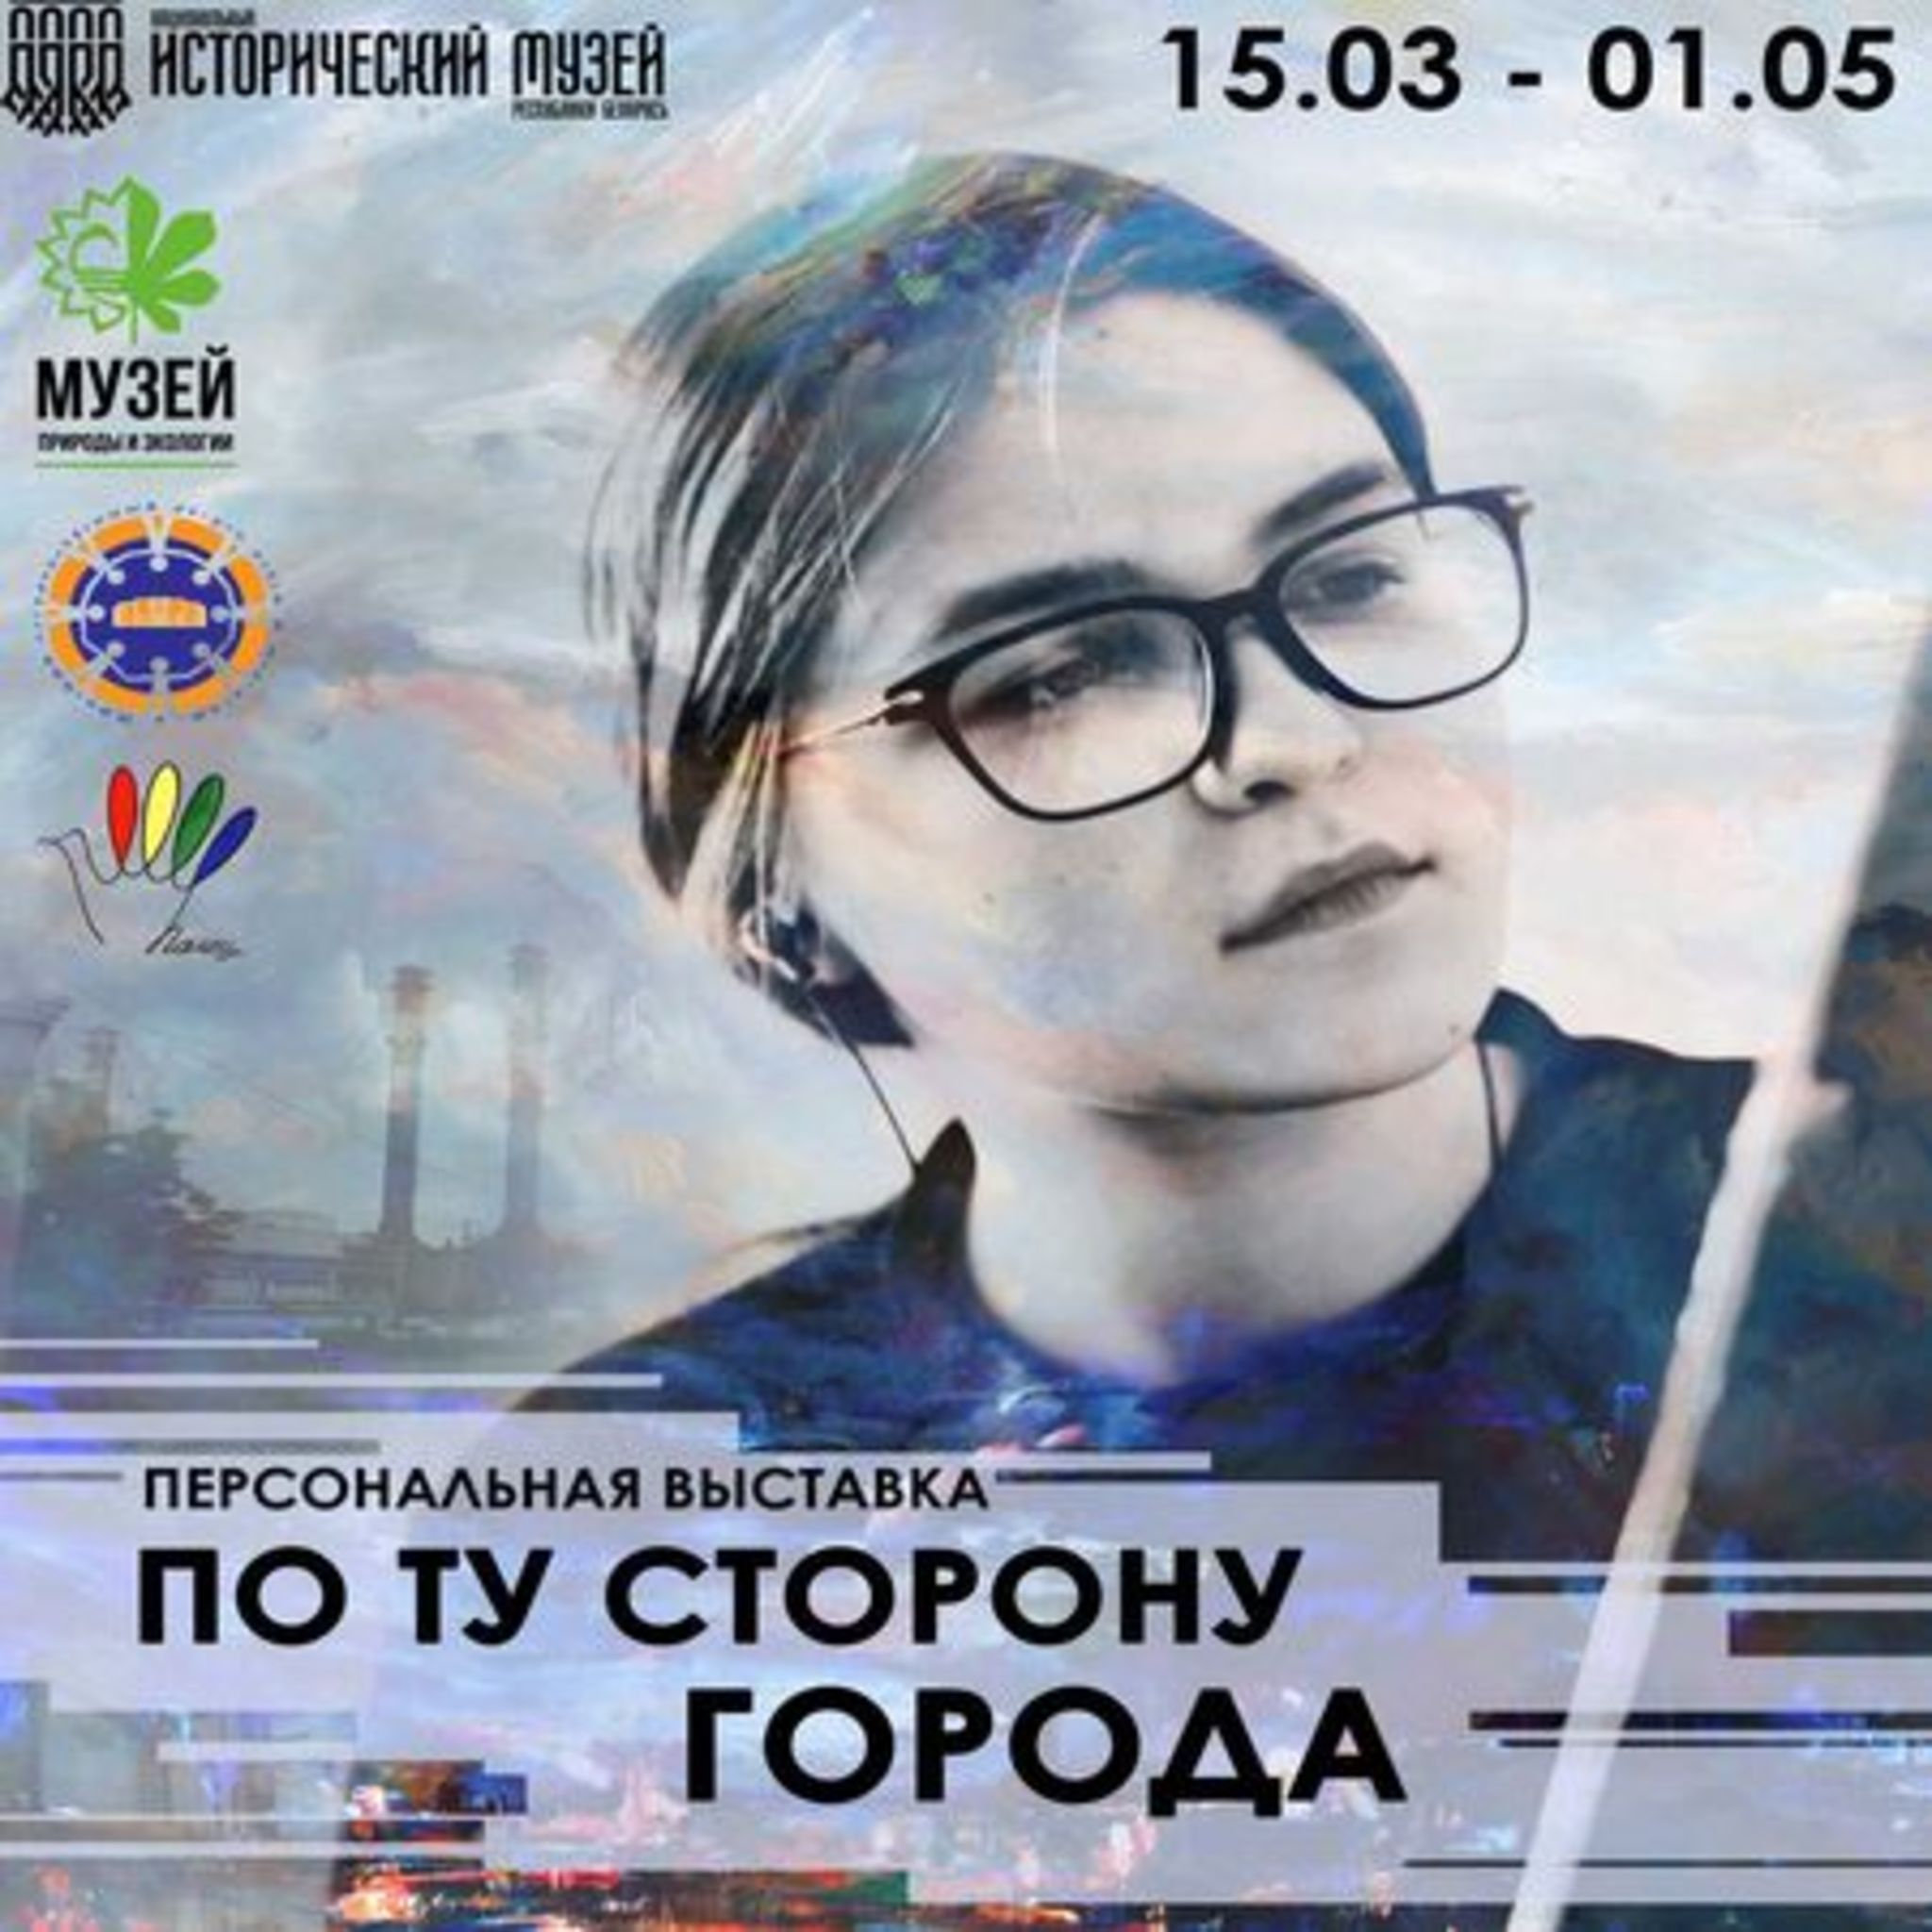 Personal exhibition of Polina Rusakovich On the other side of the city